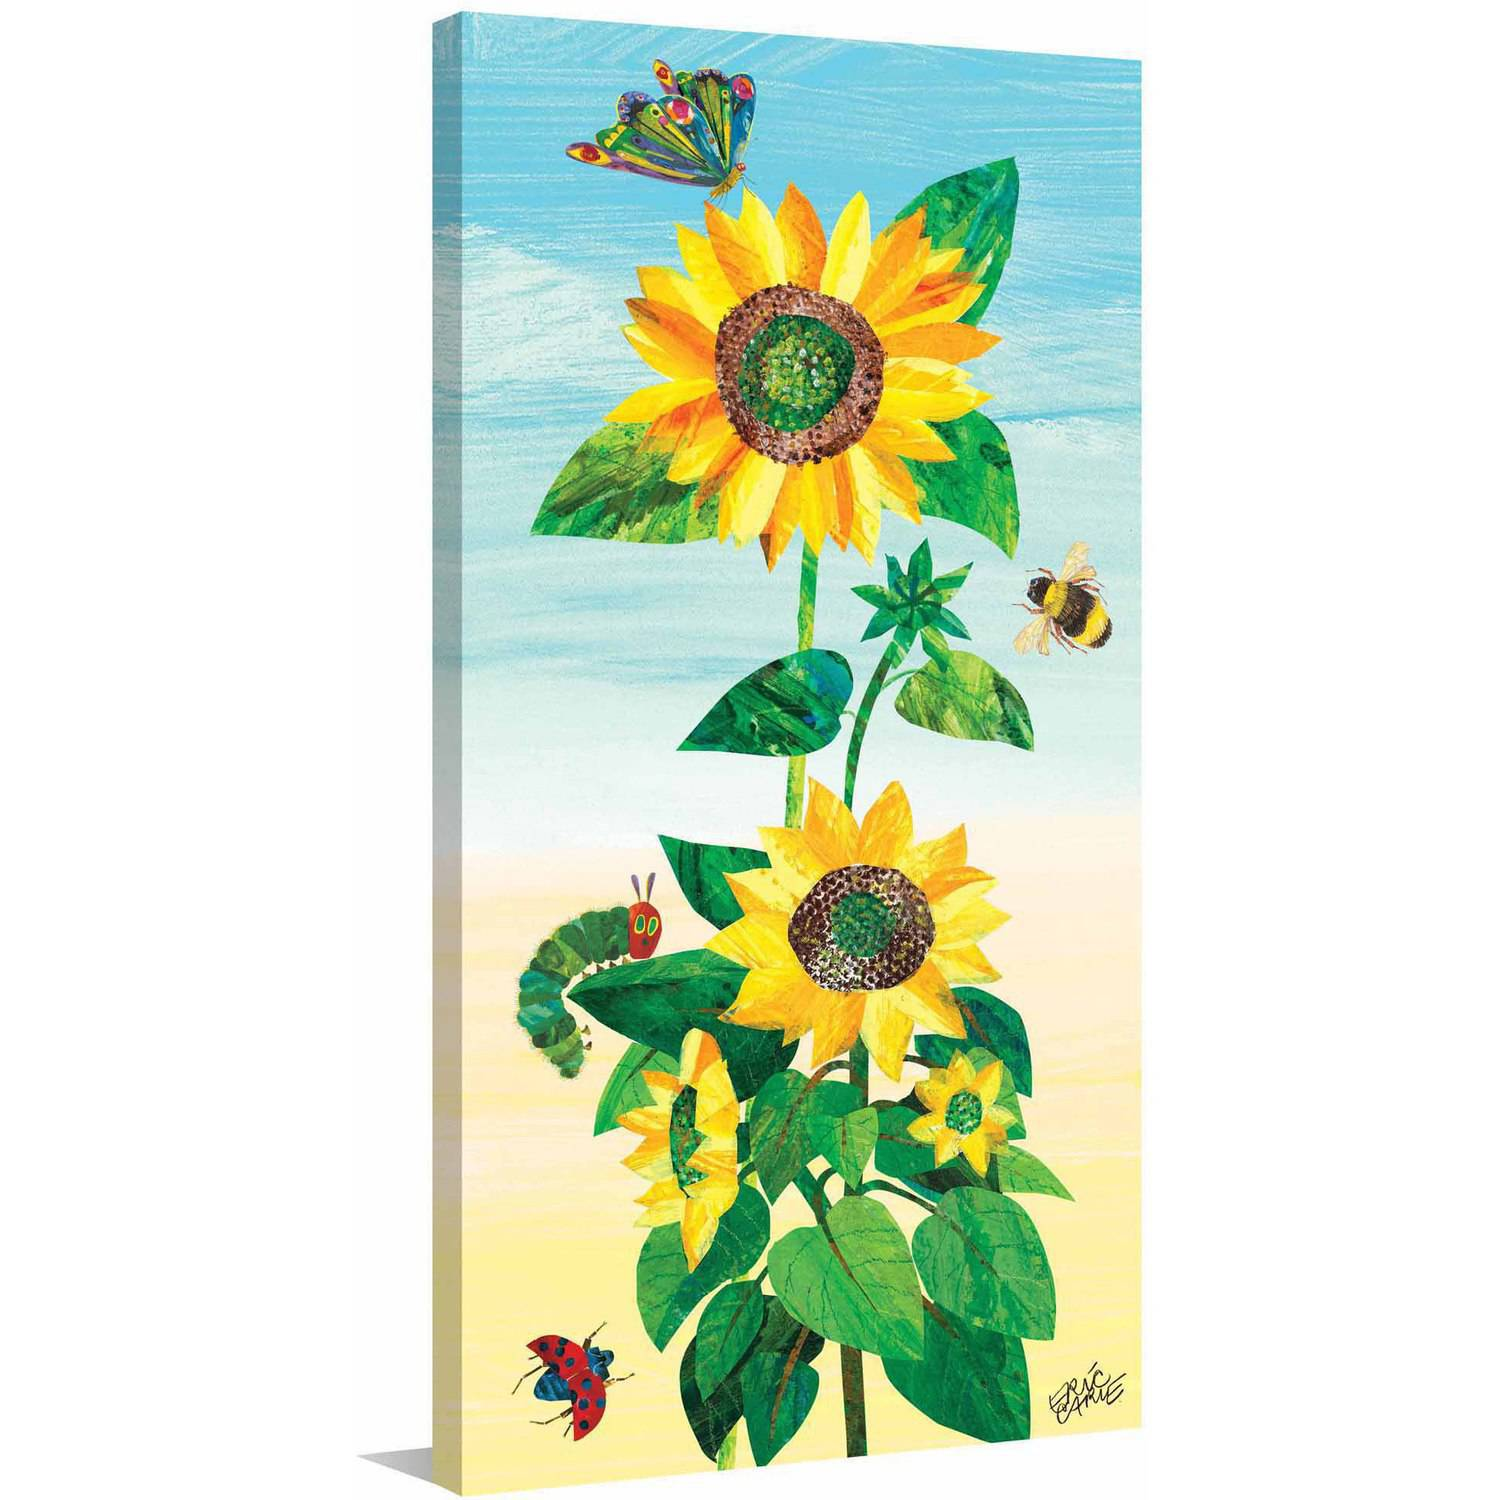 Eric Carle Sunflower and Bugs 2 Art Print on Premium Canvas